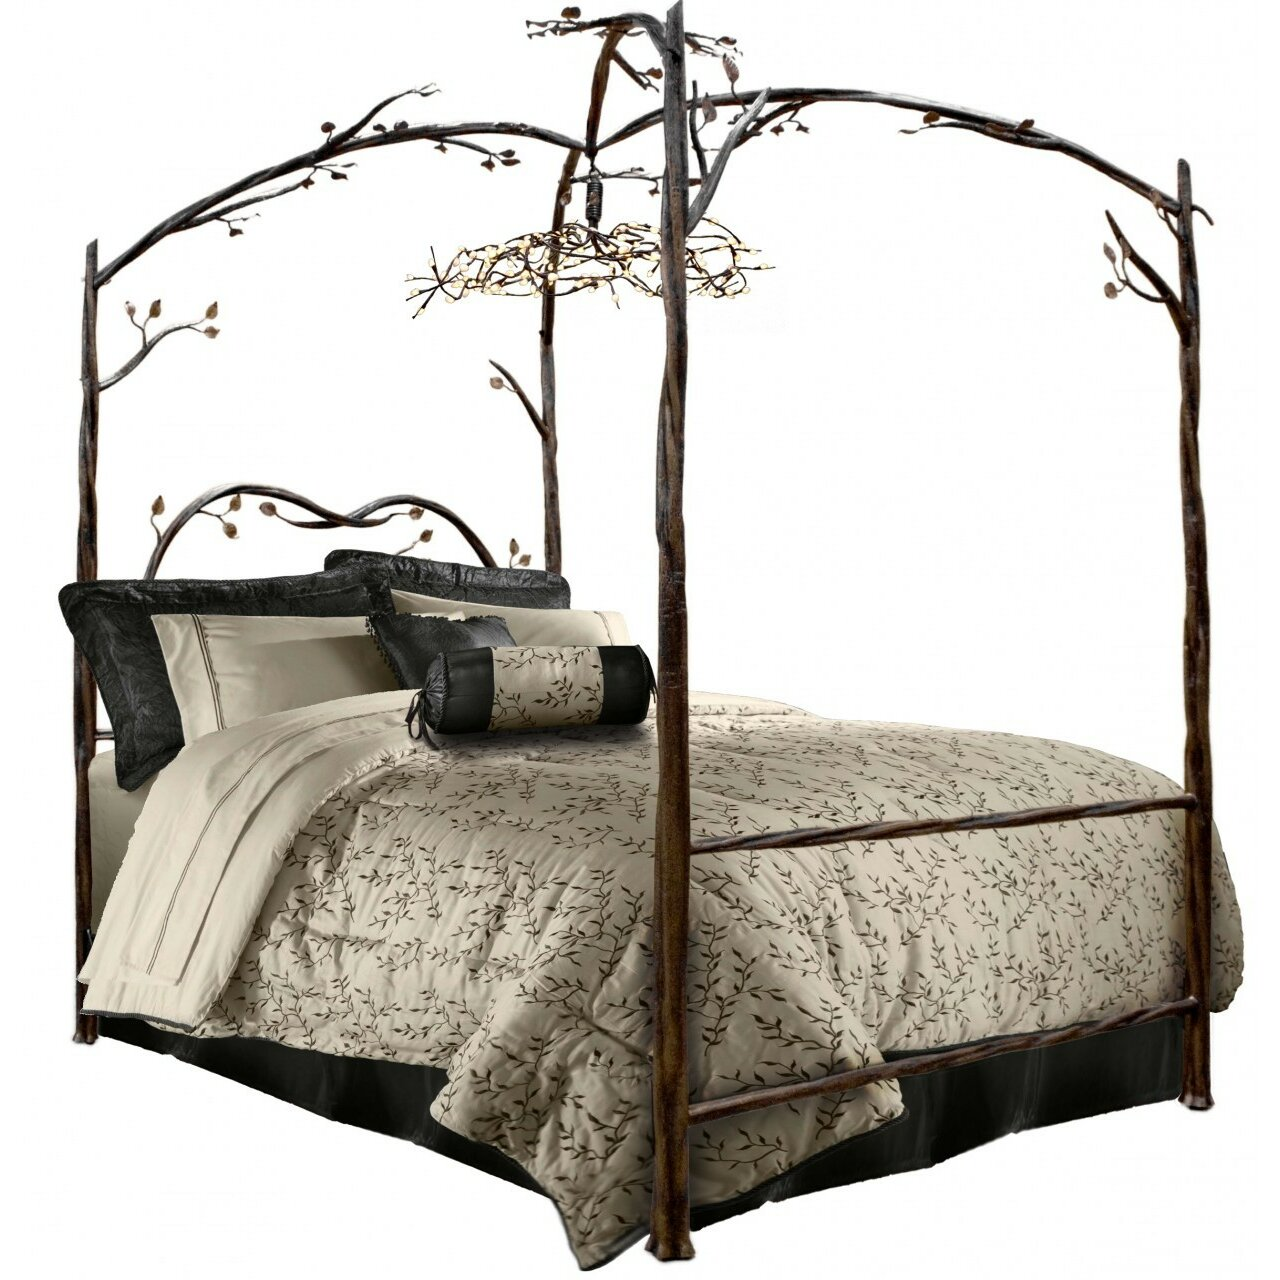 Queen Canopy Bed: Canopy Bed